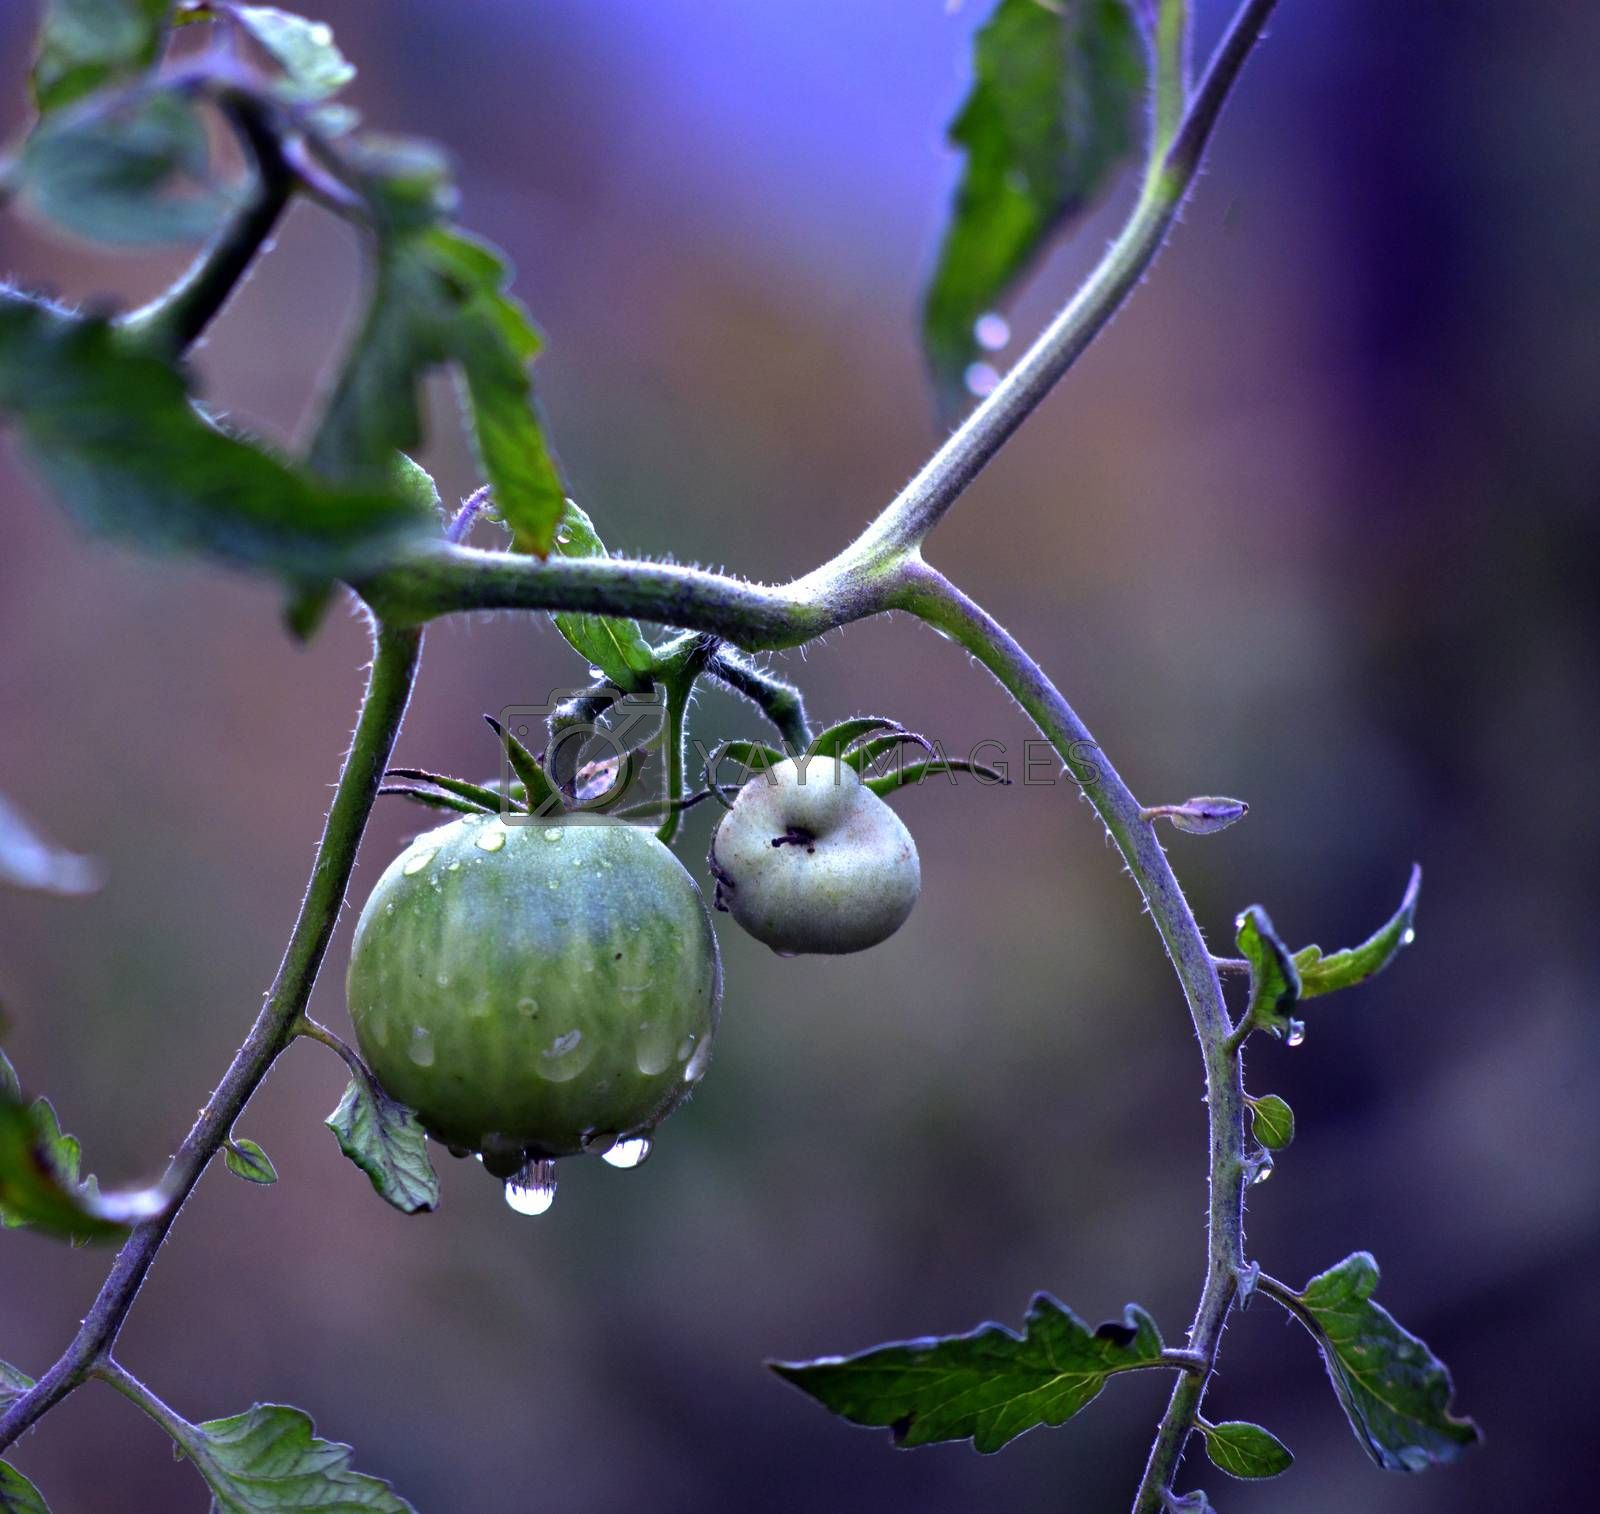 Homegrown organic tomatoes after the morning rain by nehru